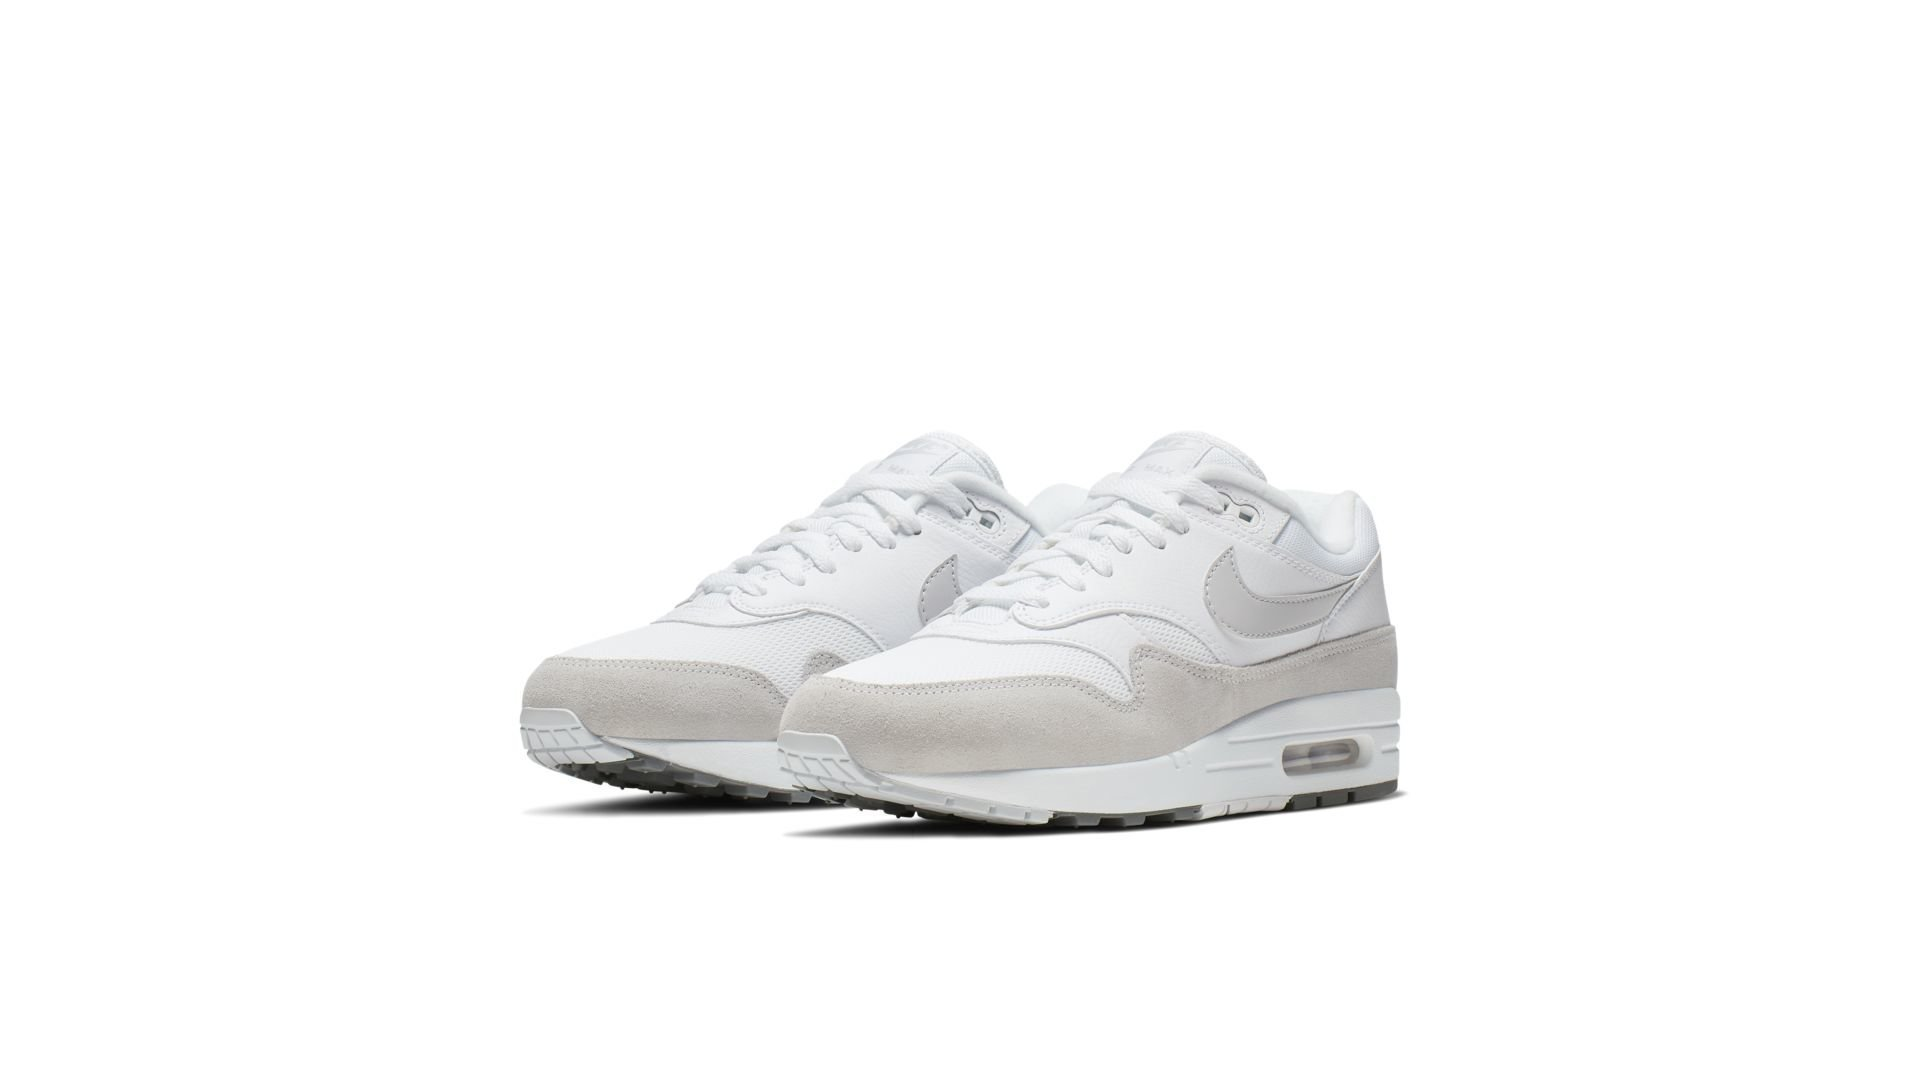 Nike Air Max 1 'Cool Grey' | AH8145 110 | Sneakerjagers